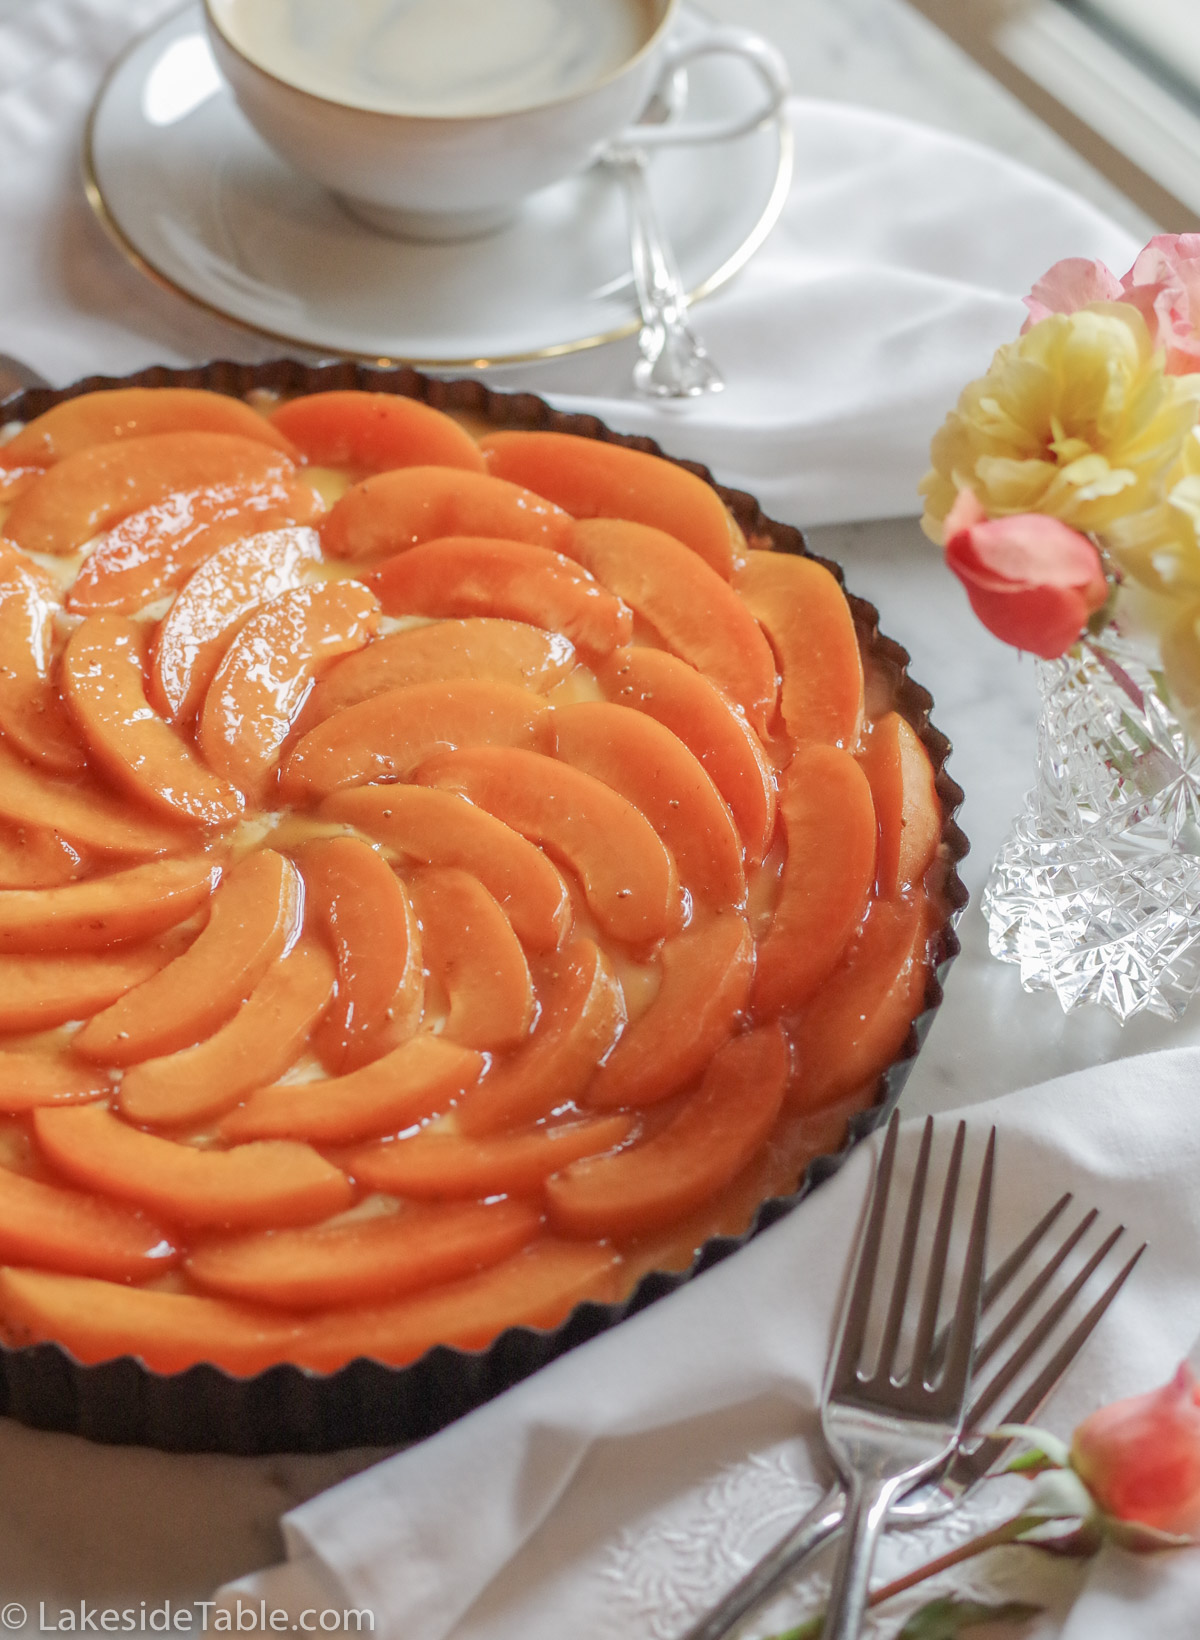 Gluten free and low carb apricot tart is light and blissful! Treat yourself with no worries!